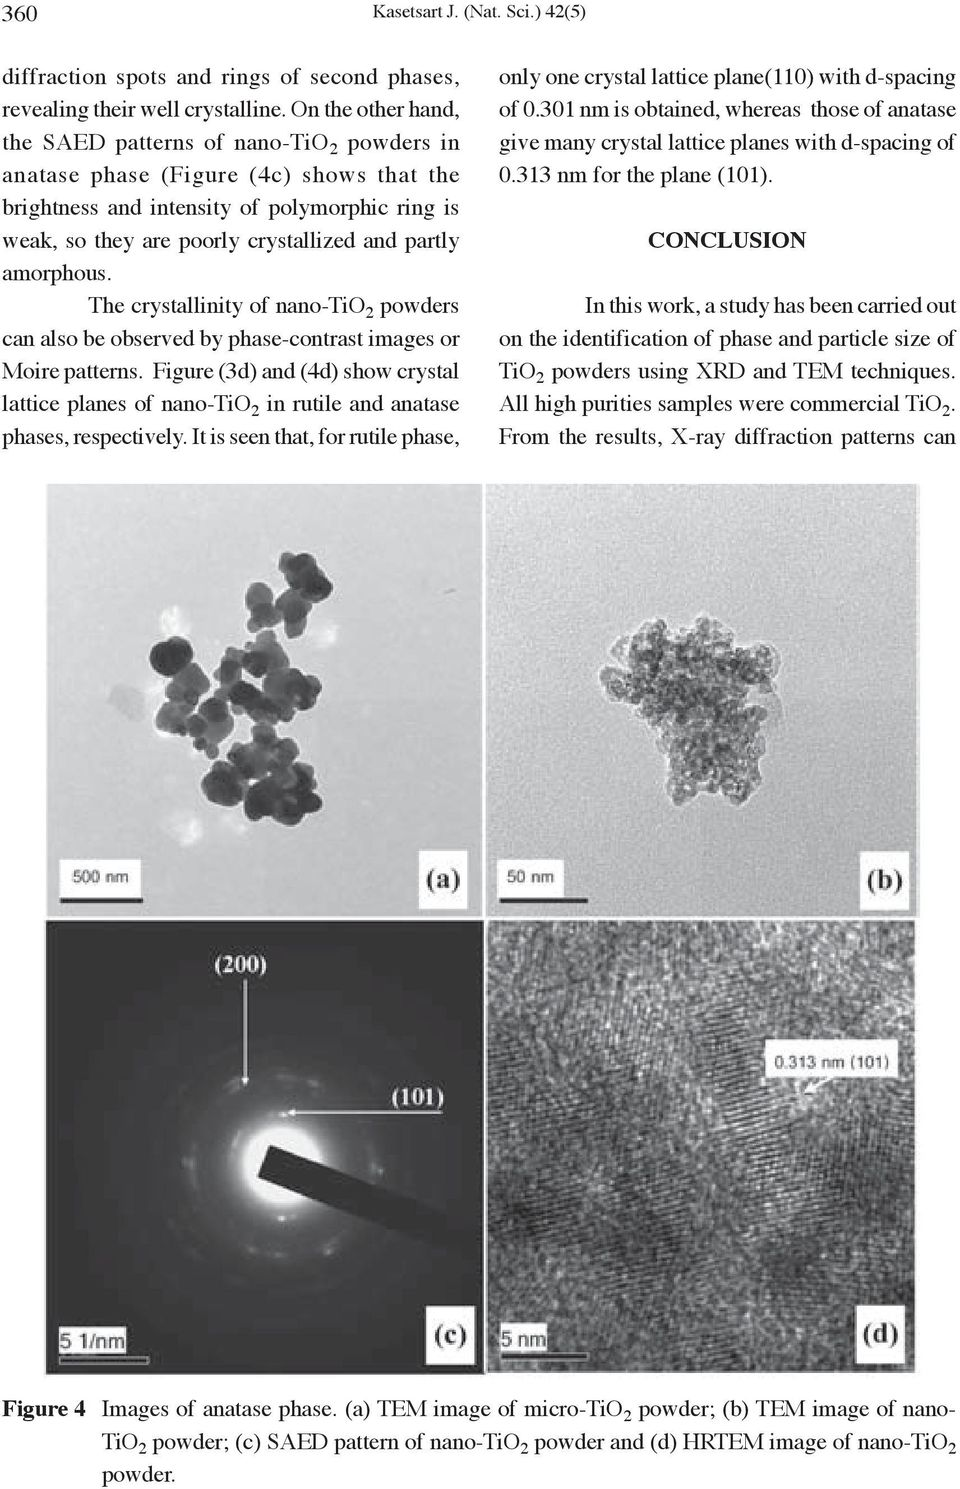 partly amorphous. The crystallinity of nano-tio 2 powders can also be observed by phase-contrast images or Moire patterns.